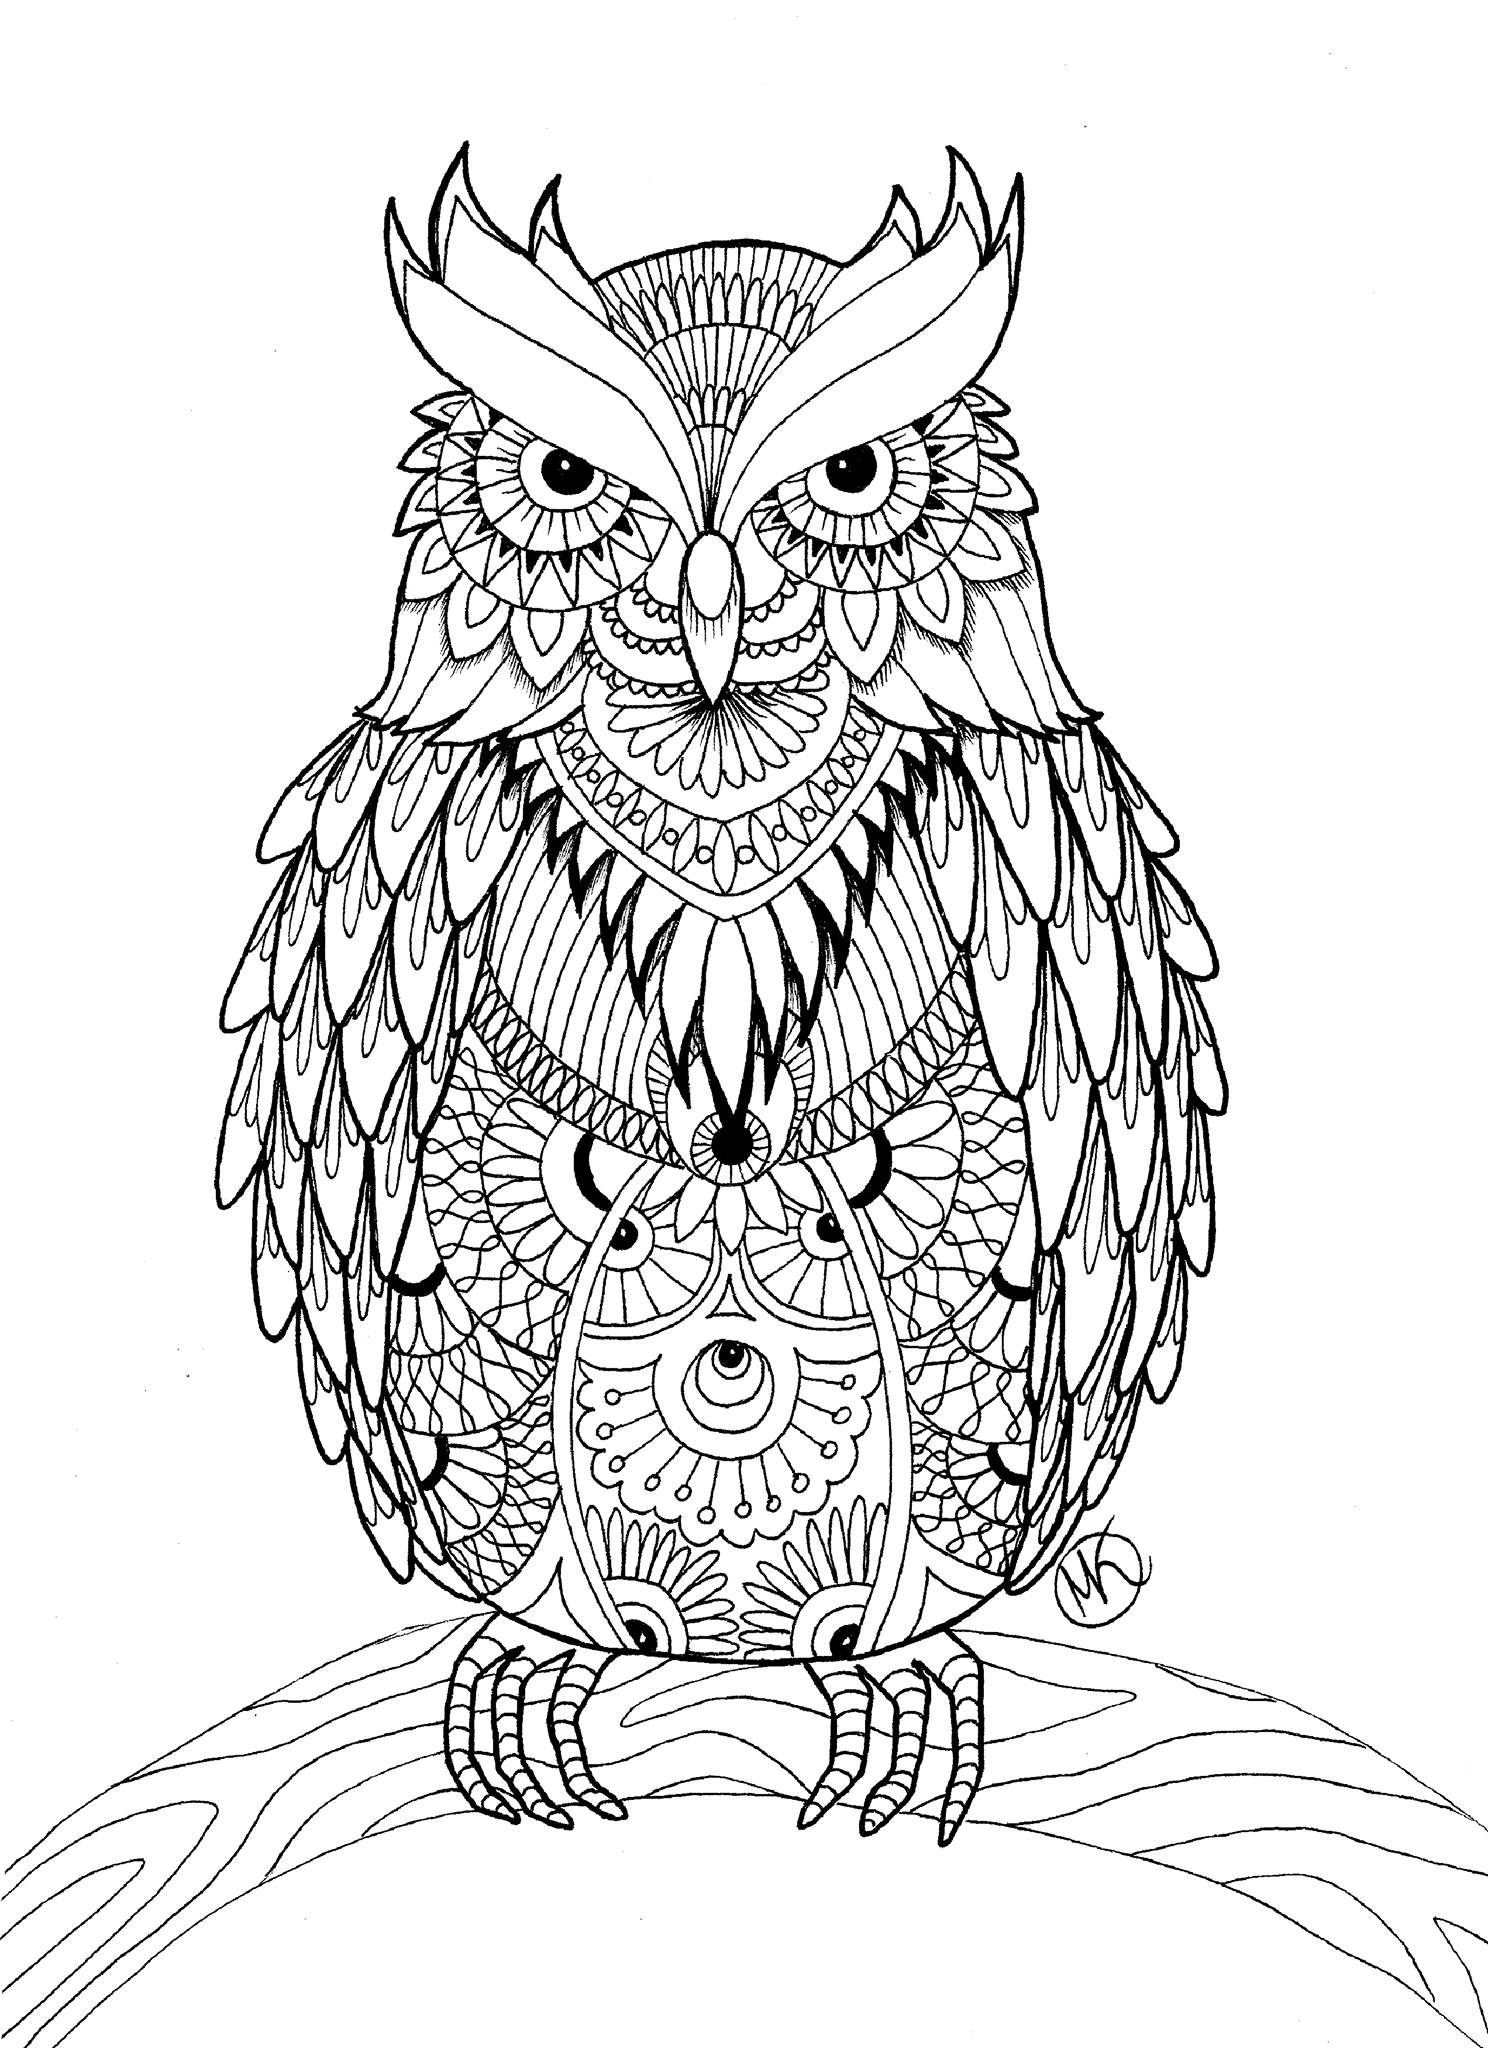 Coloring pages for adults owls